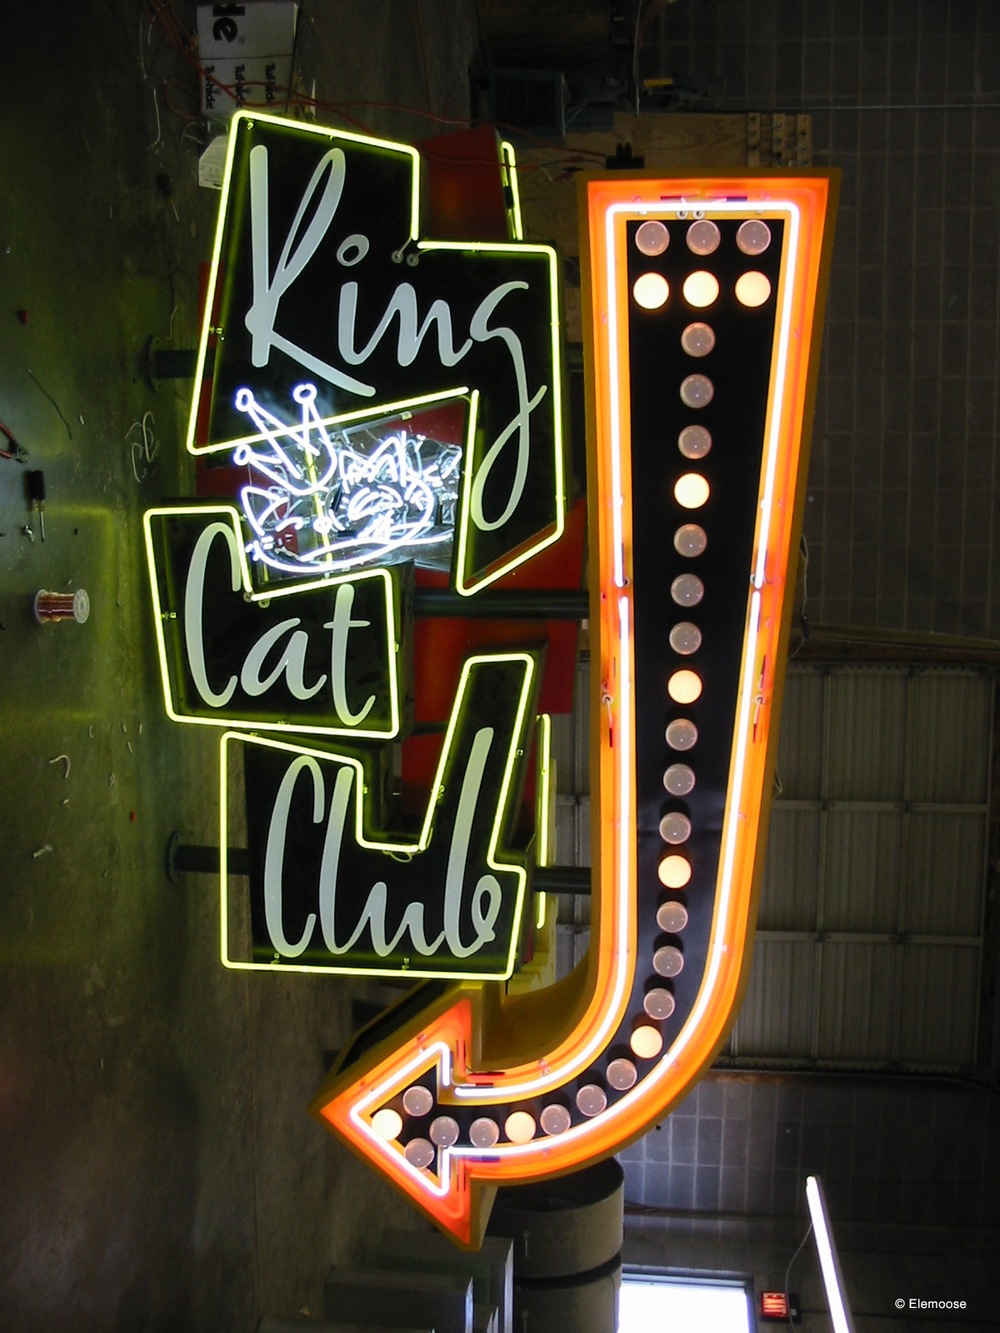 neon-tubing-king-cat-club-ameristar-casino.jpg